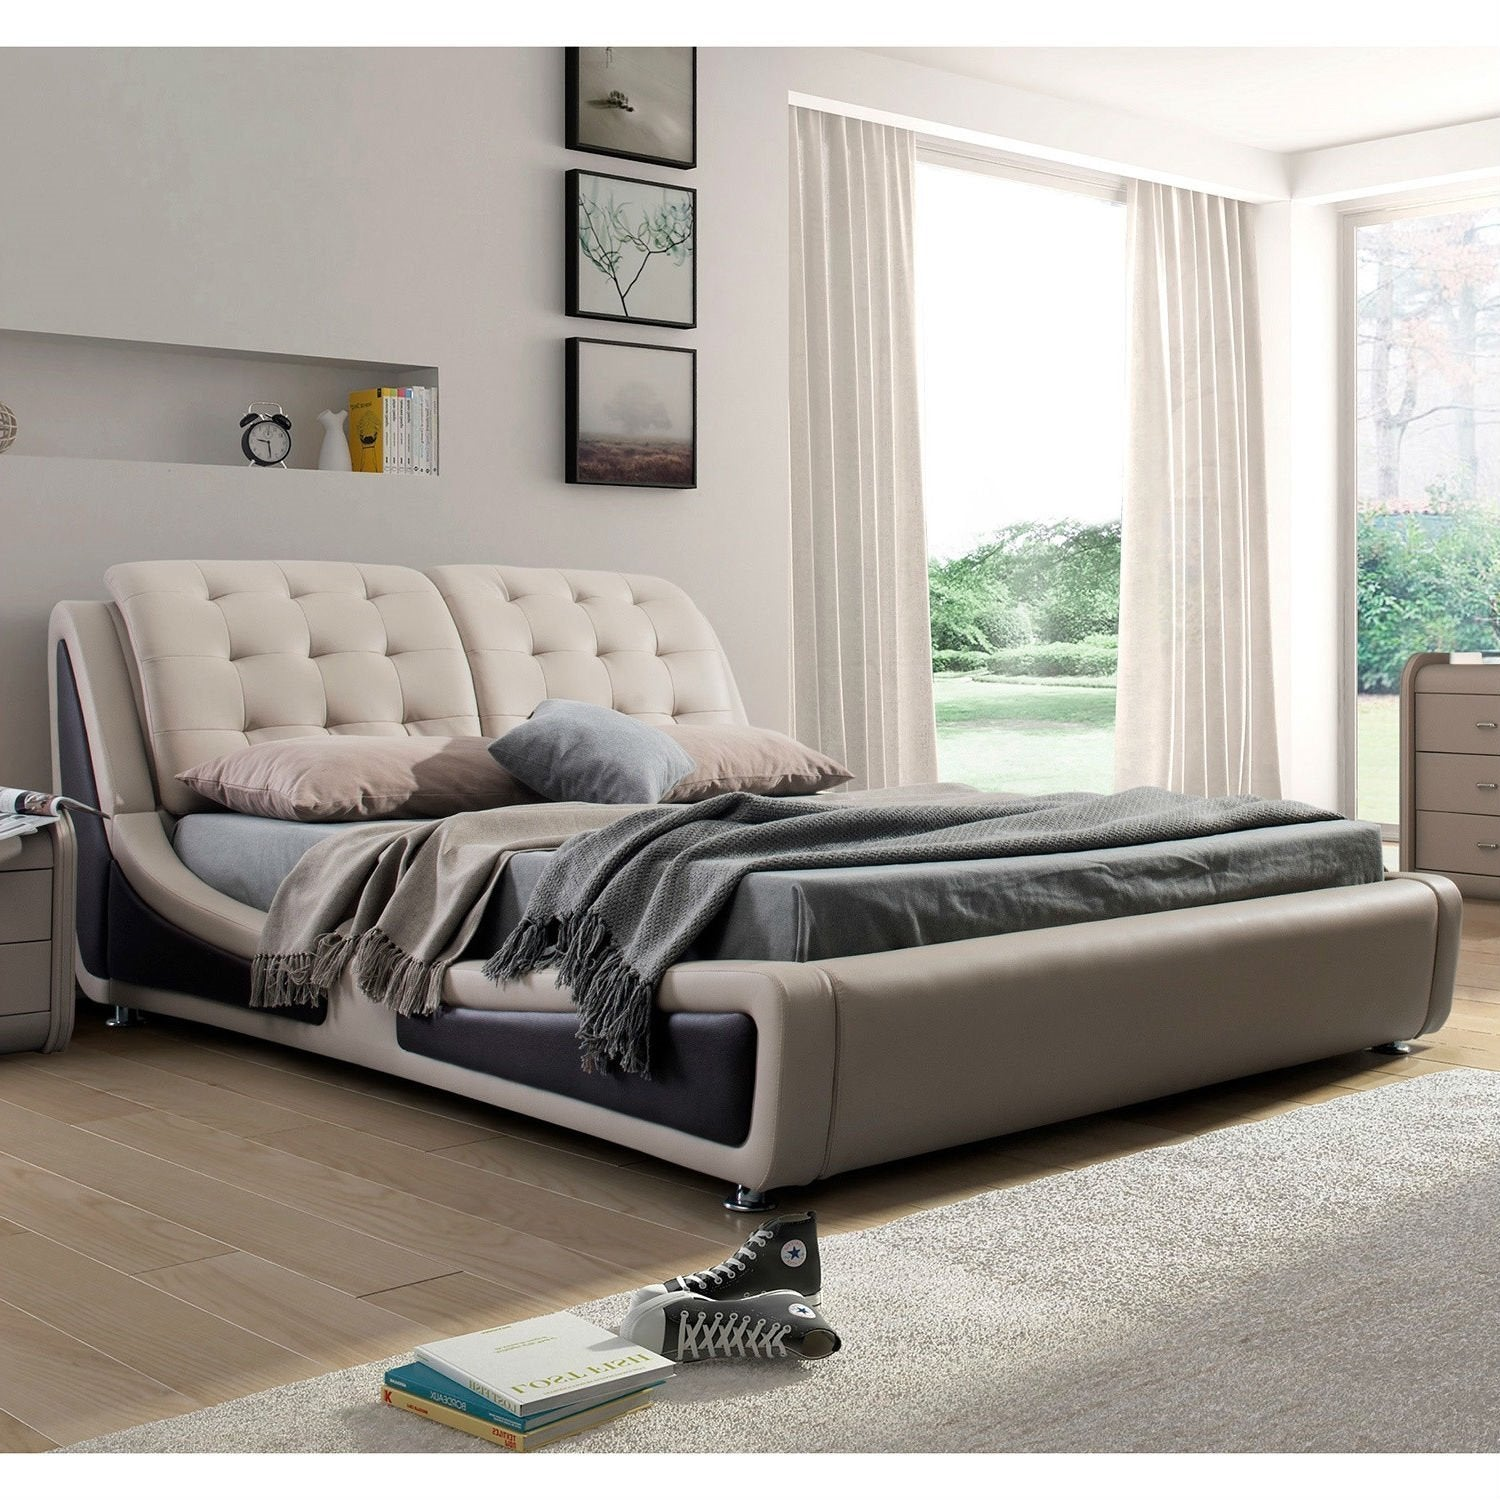 Ellis King Size Upholstered Bed.